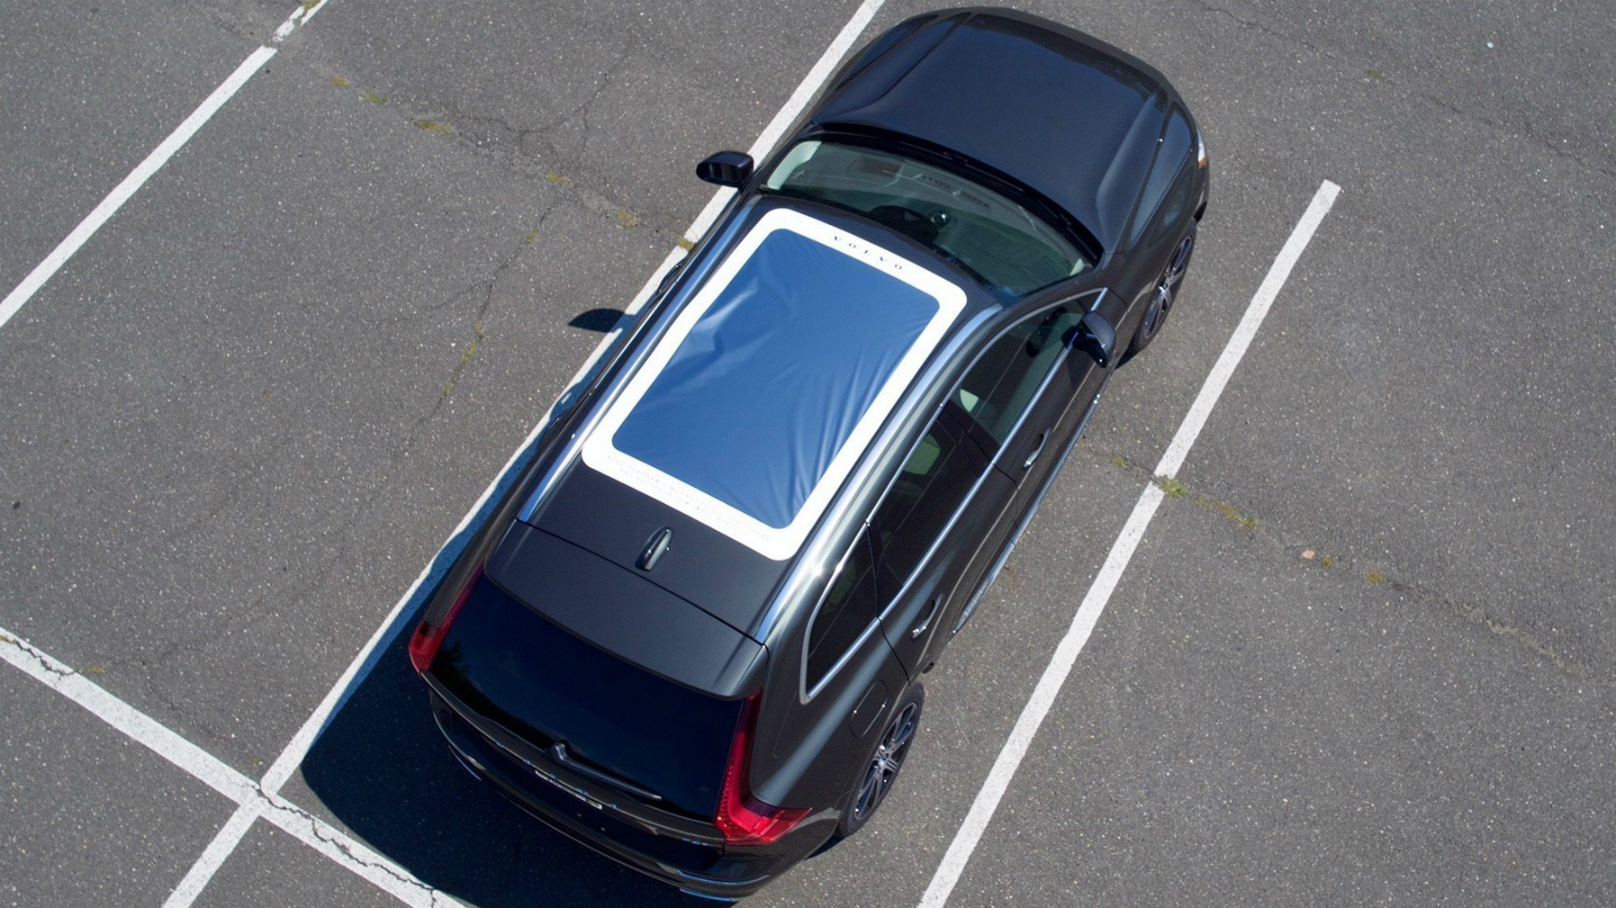 Solar Eclipse Moonroof Viewer